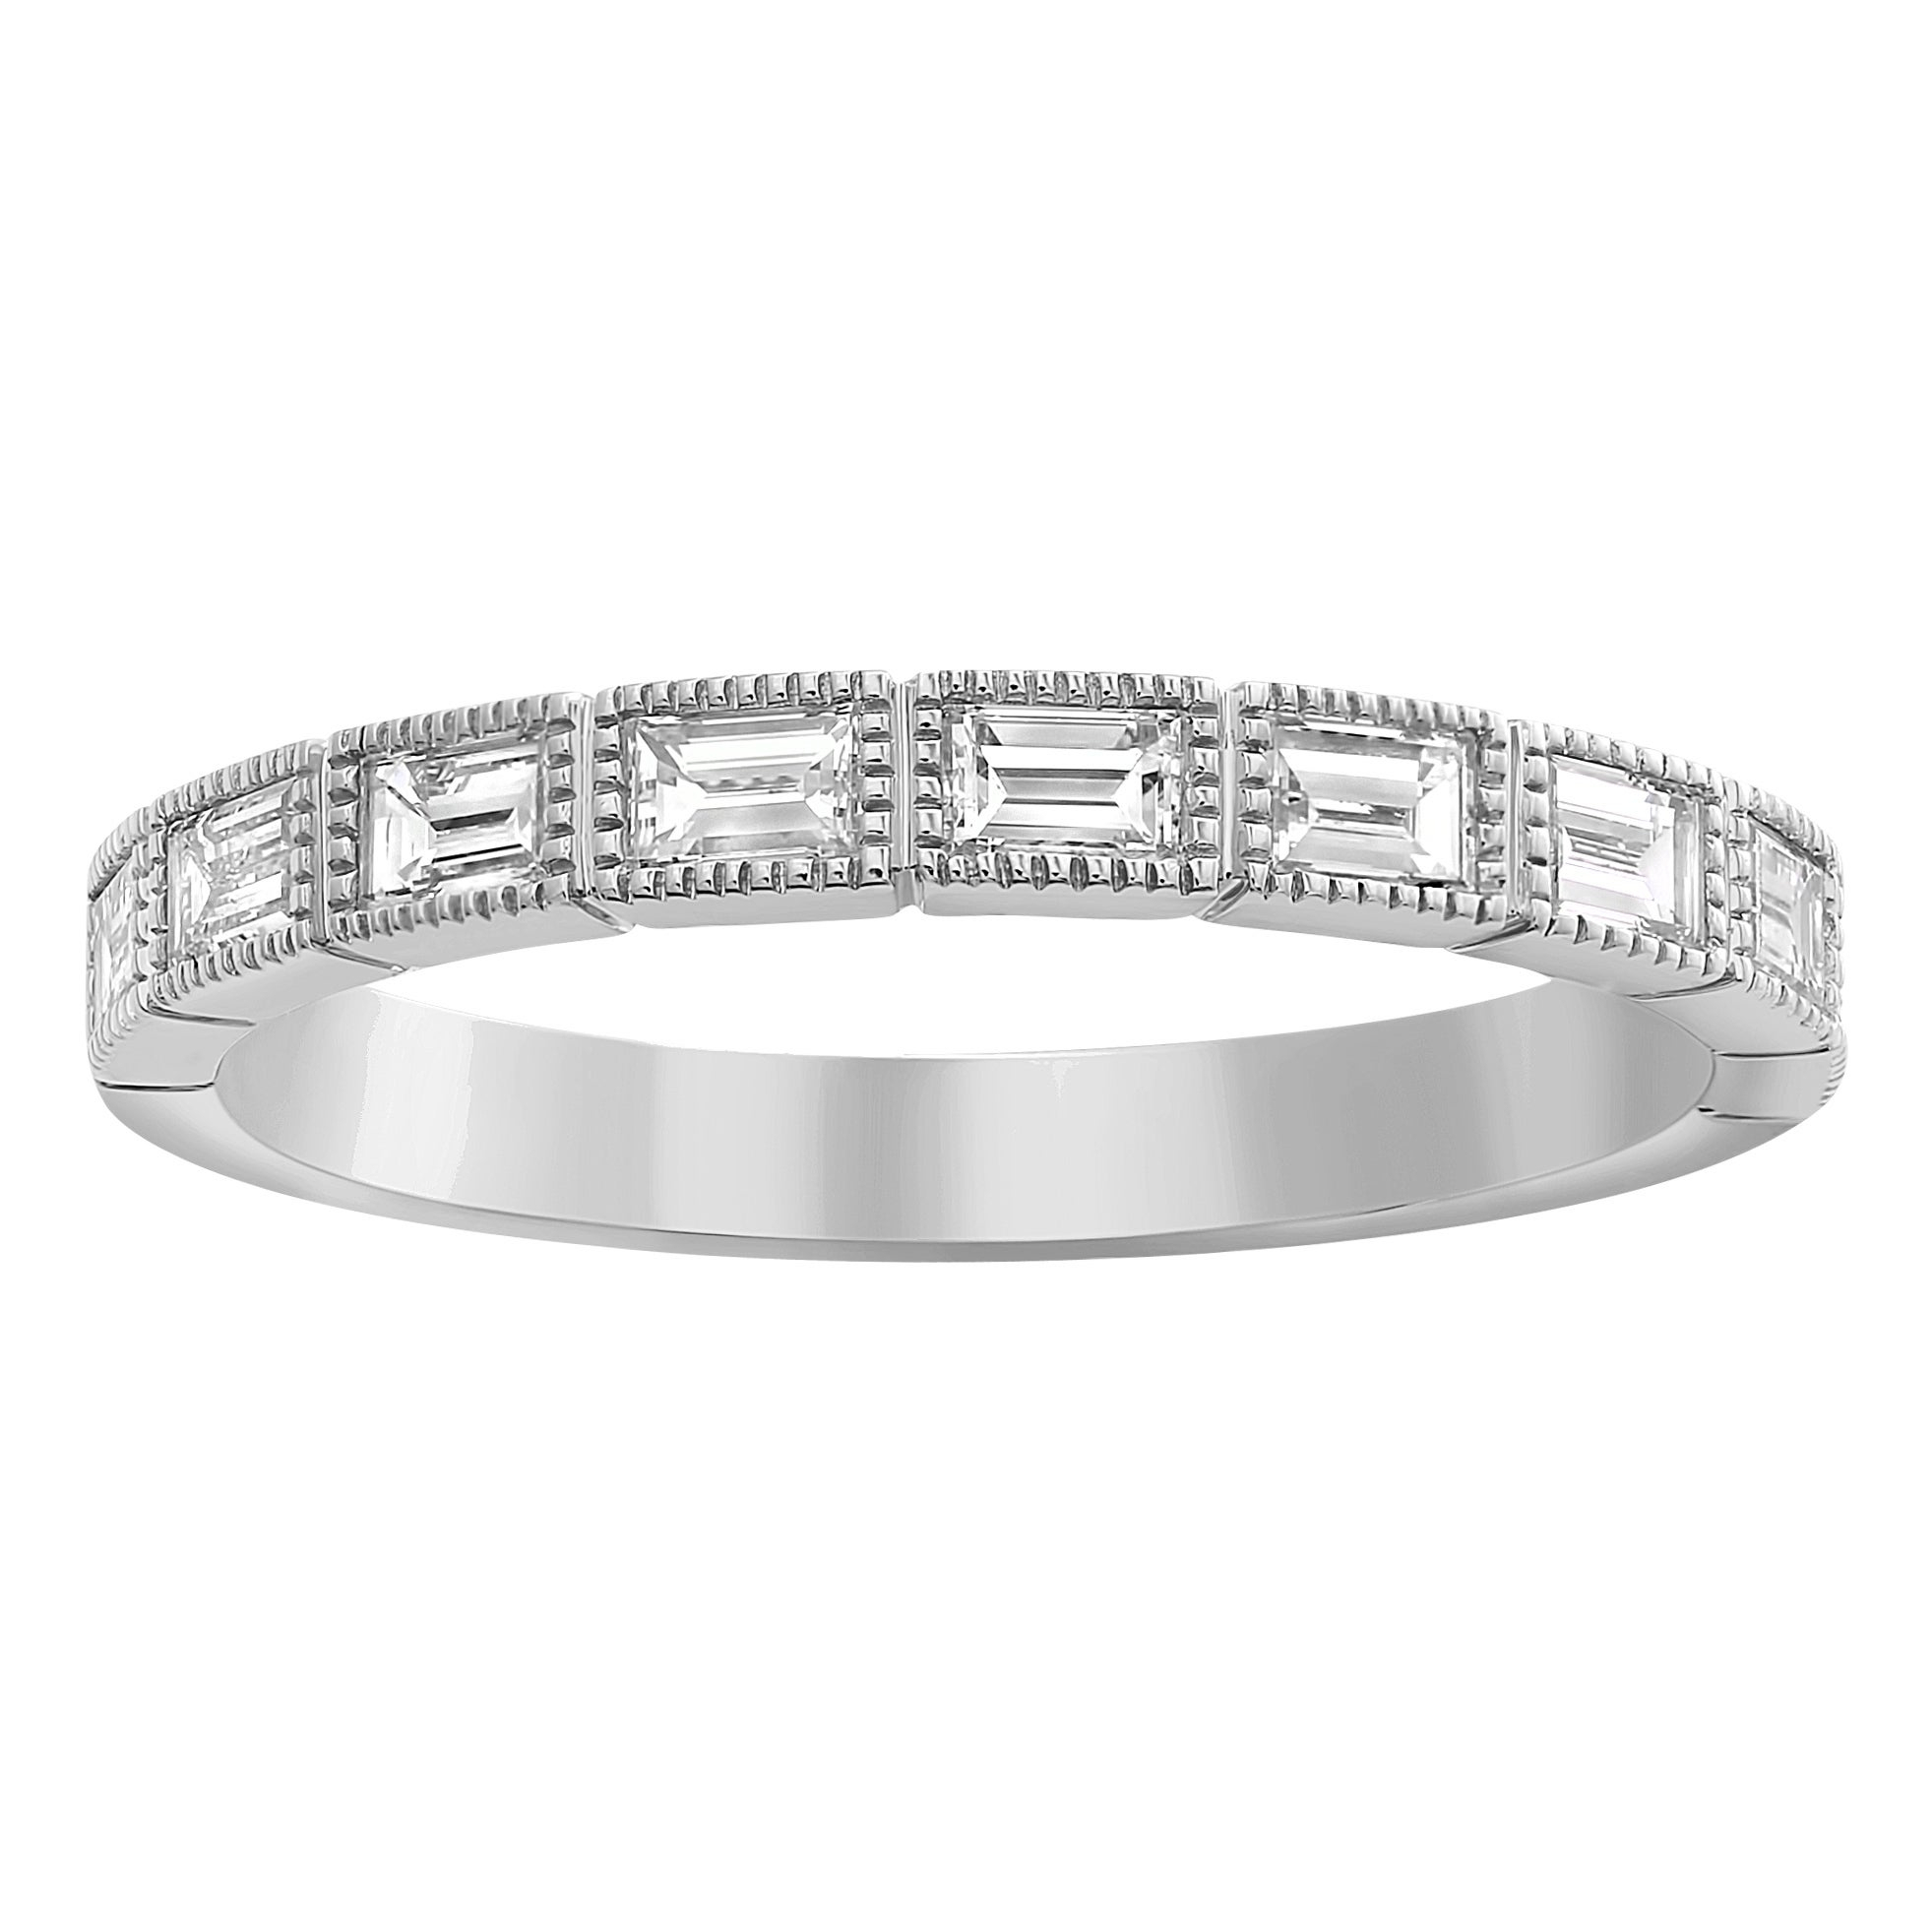 14Kt White Gold 7/10Ct Baguette Diamonds Vintage Wedding Band Ring Throughout Most Recently Released Round And Baguette Diamond Vintage Style Anniversary Bands In White Gold (View 3 of 25)